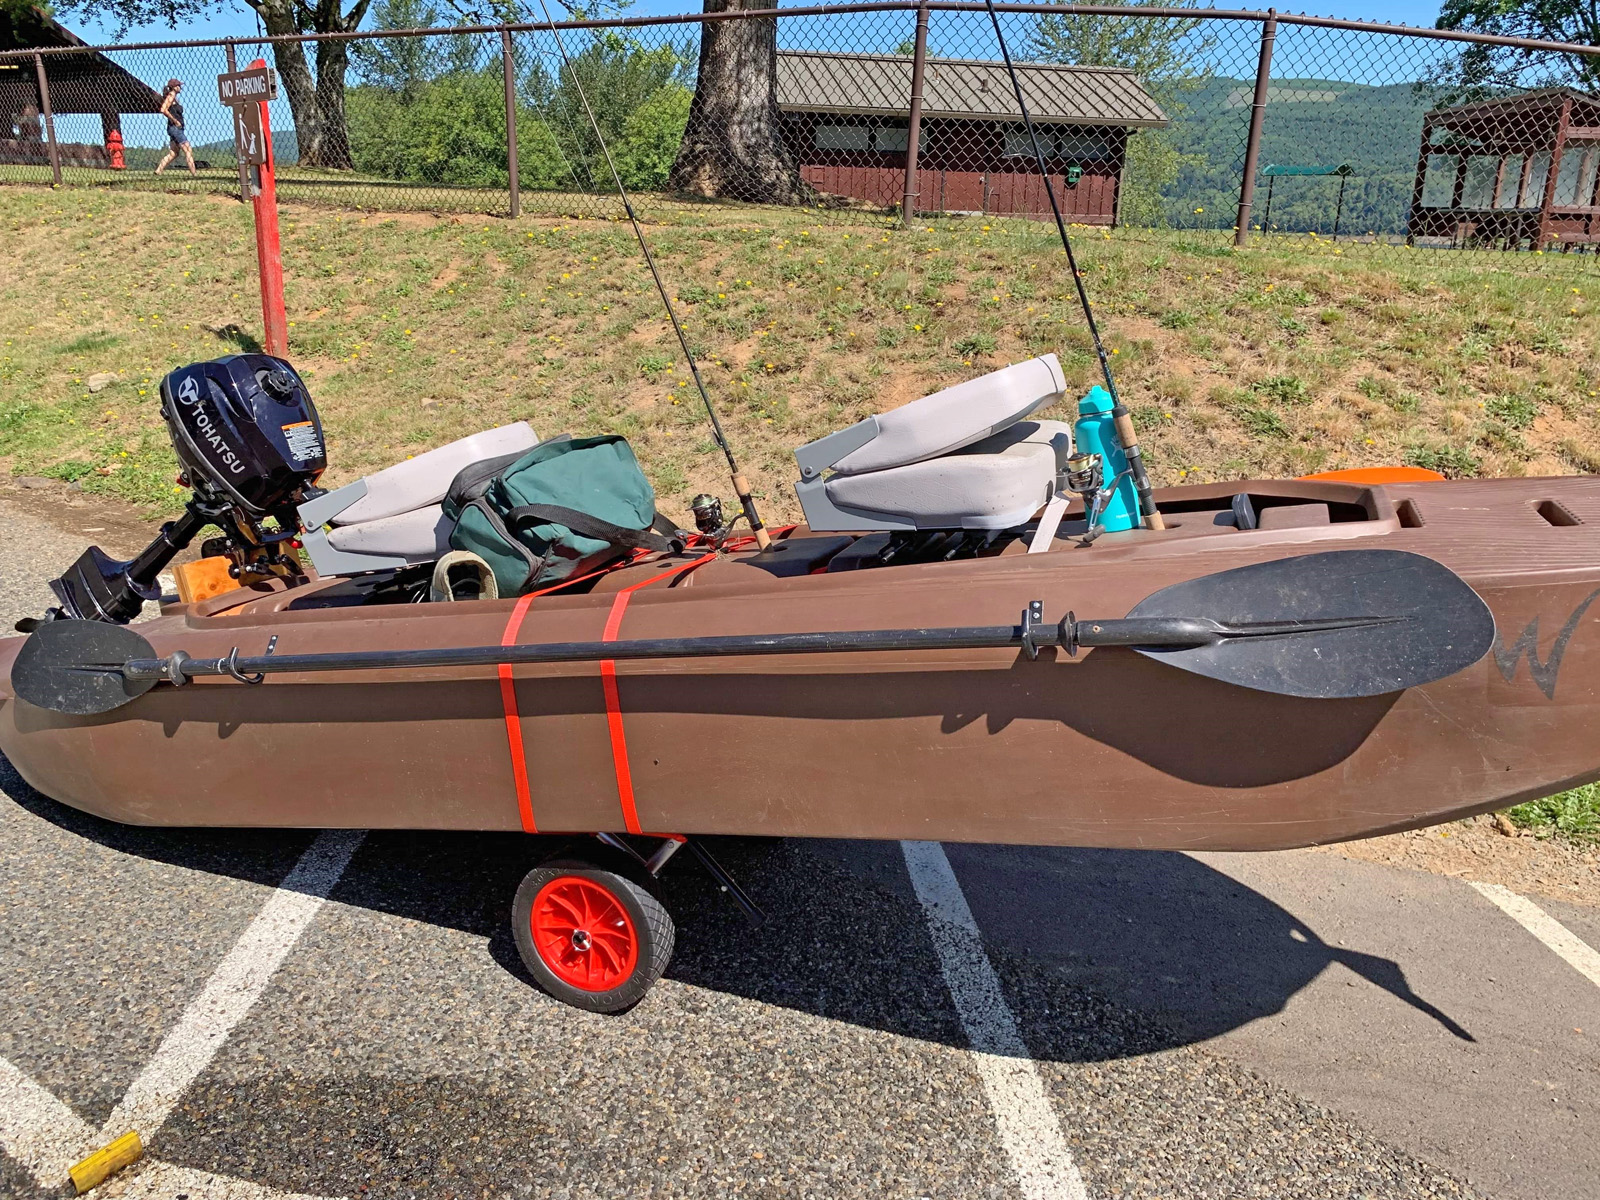 Wavewalk S4 microskiff with swivel seats